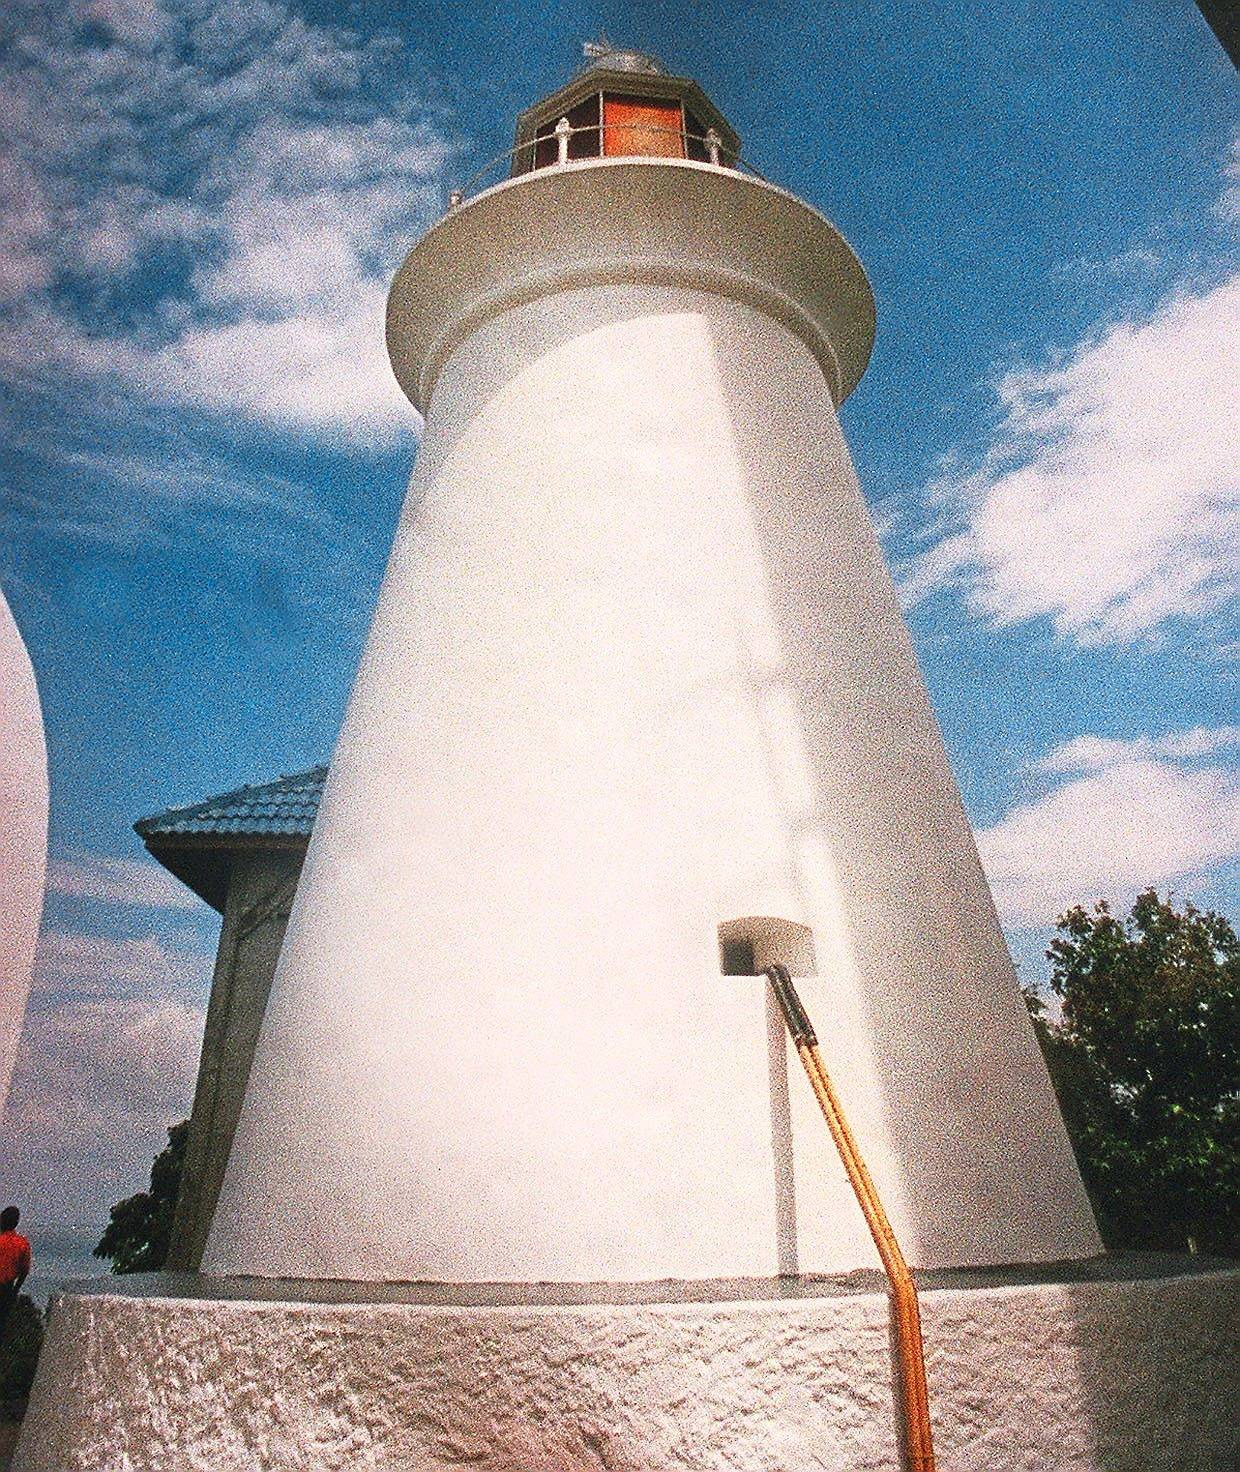 There is a lighthouse you can visit at Pulau Angsa.